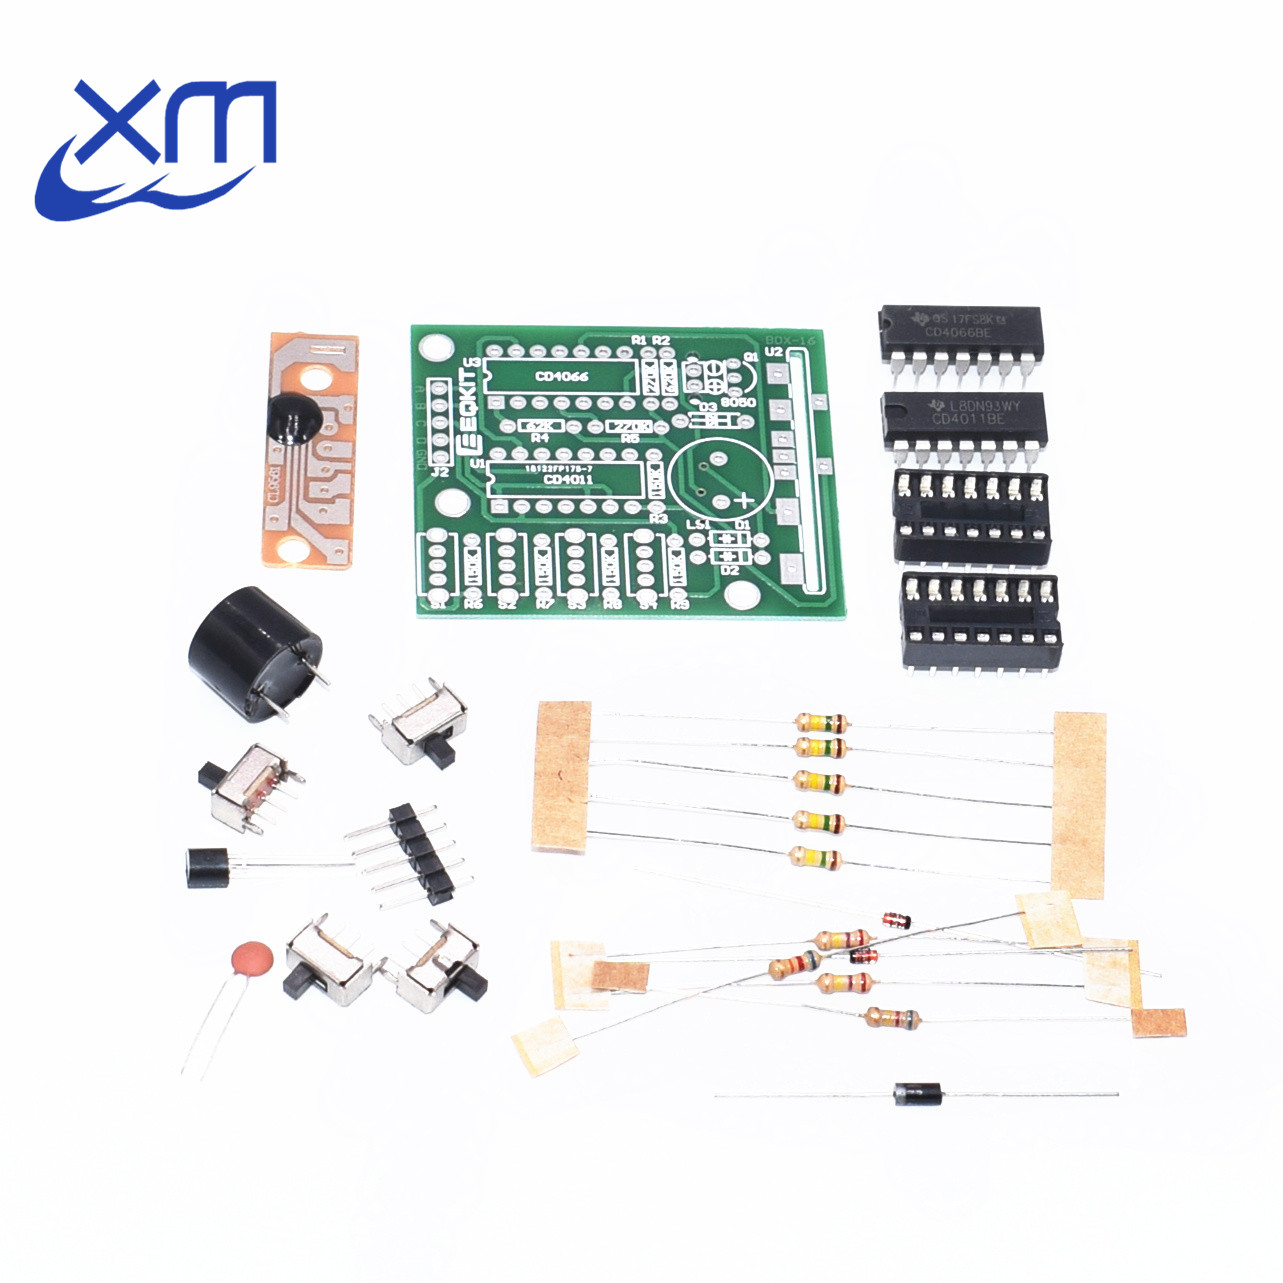 16 Music Box Sound Box Electronic Production DIY Parts Components Accessory Kits green/blue